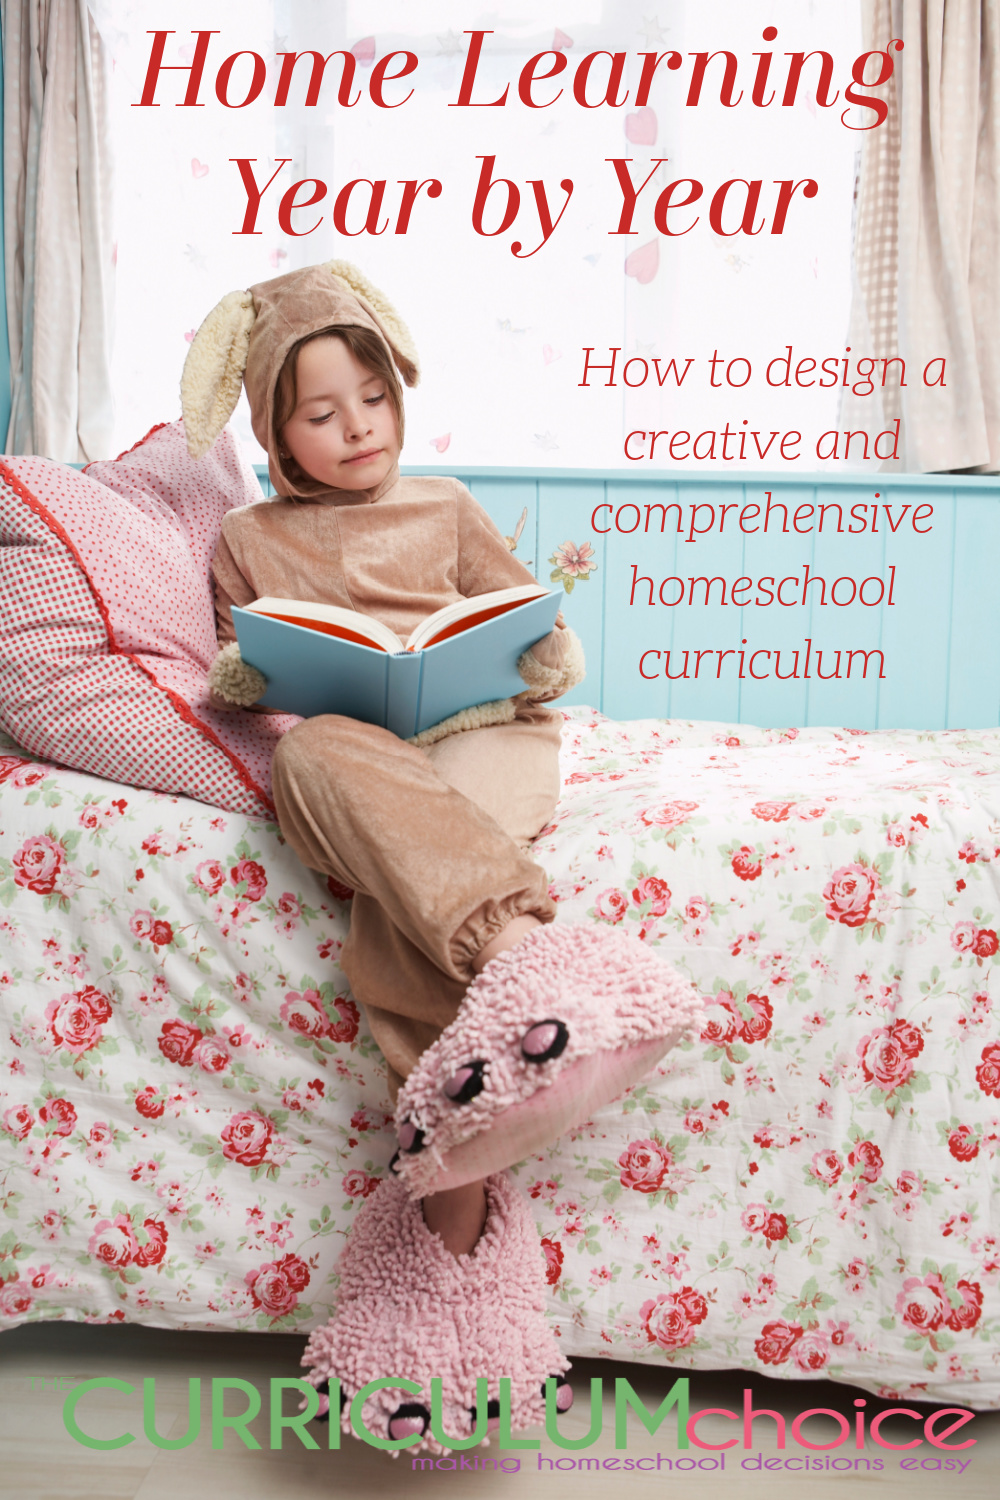 Wonder if you're teaching your children the right information at the right time? Home Learning Year by Year answers that question and more! It's a comprehensive guide to creating homeschool curriculum for grades K-12! A review from The Curriculum Choice